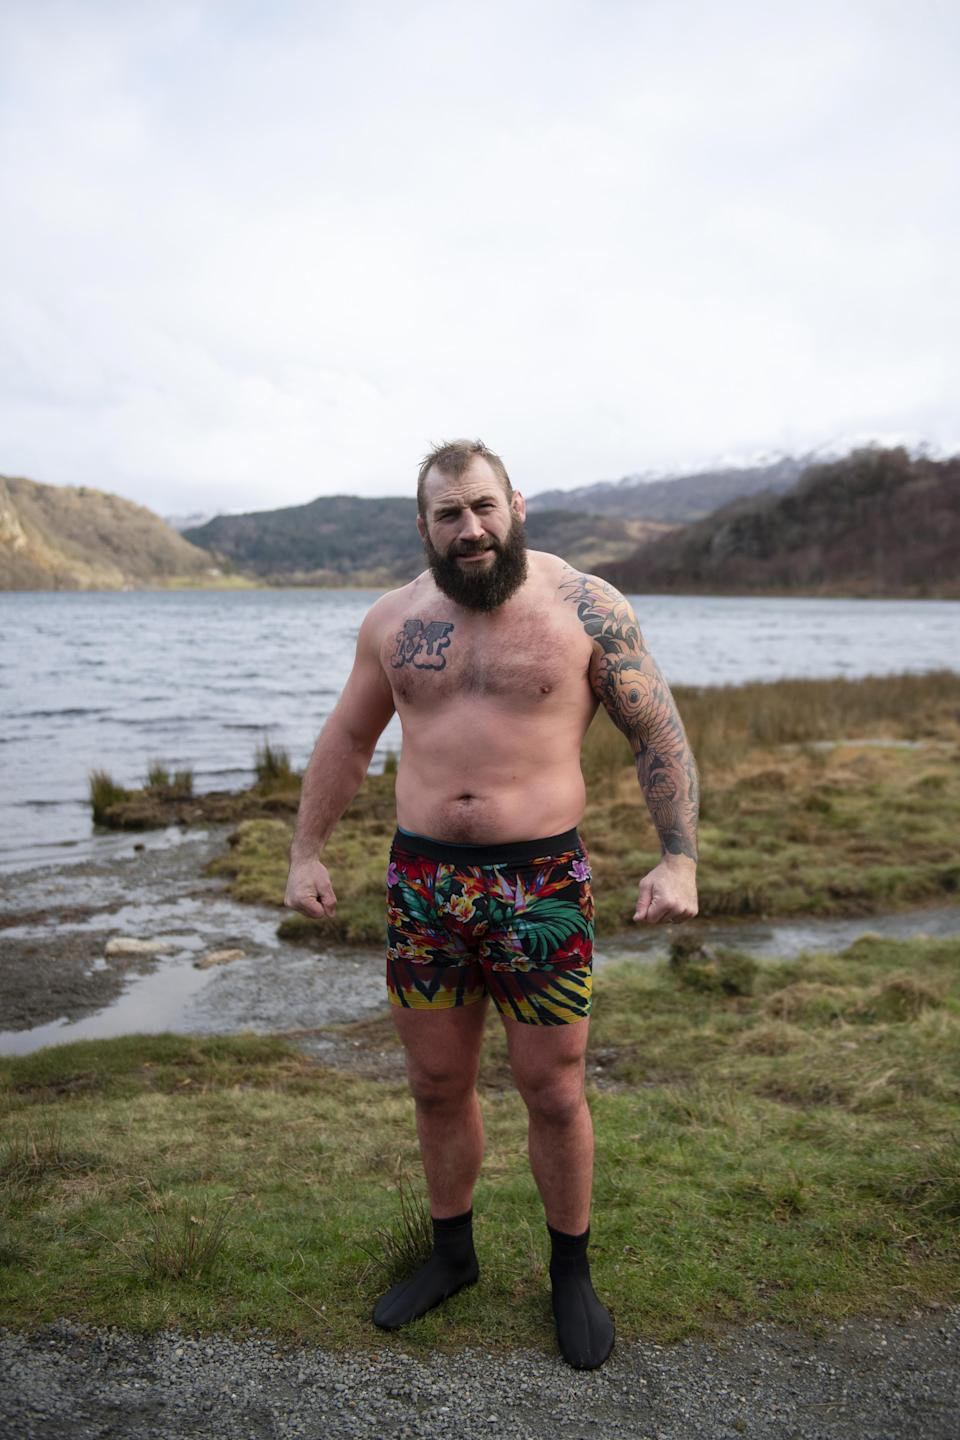 Joe Marler is releasing a documentary on how to copy with mental health issues